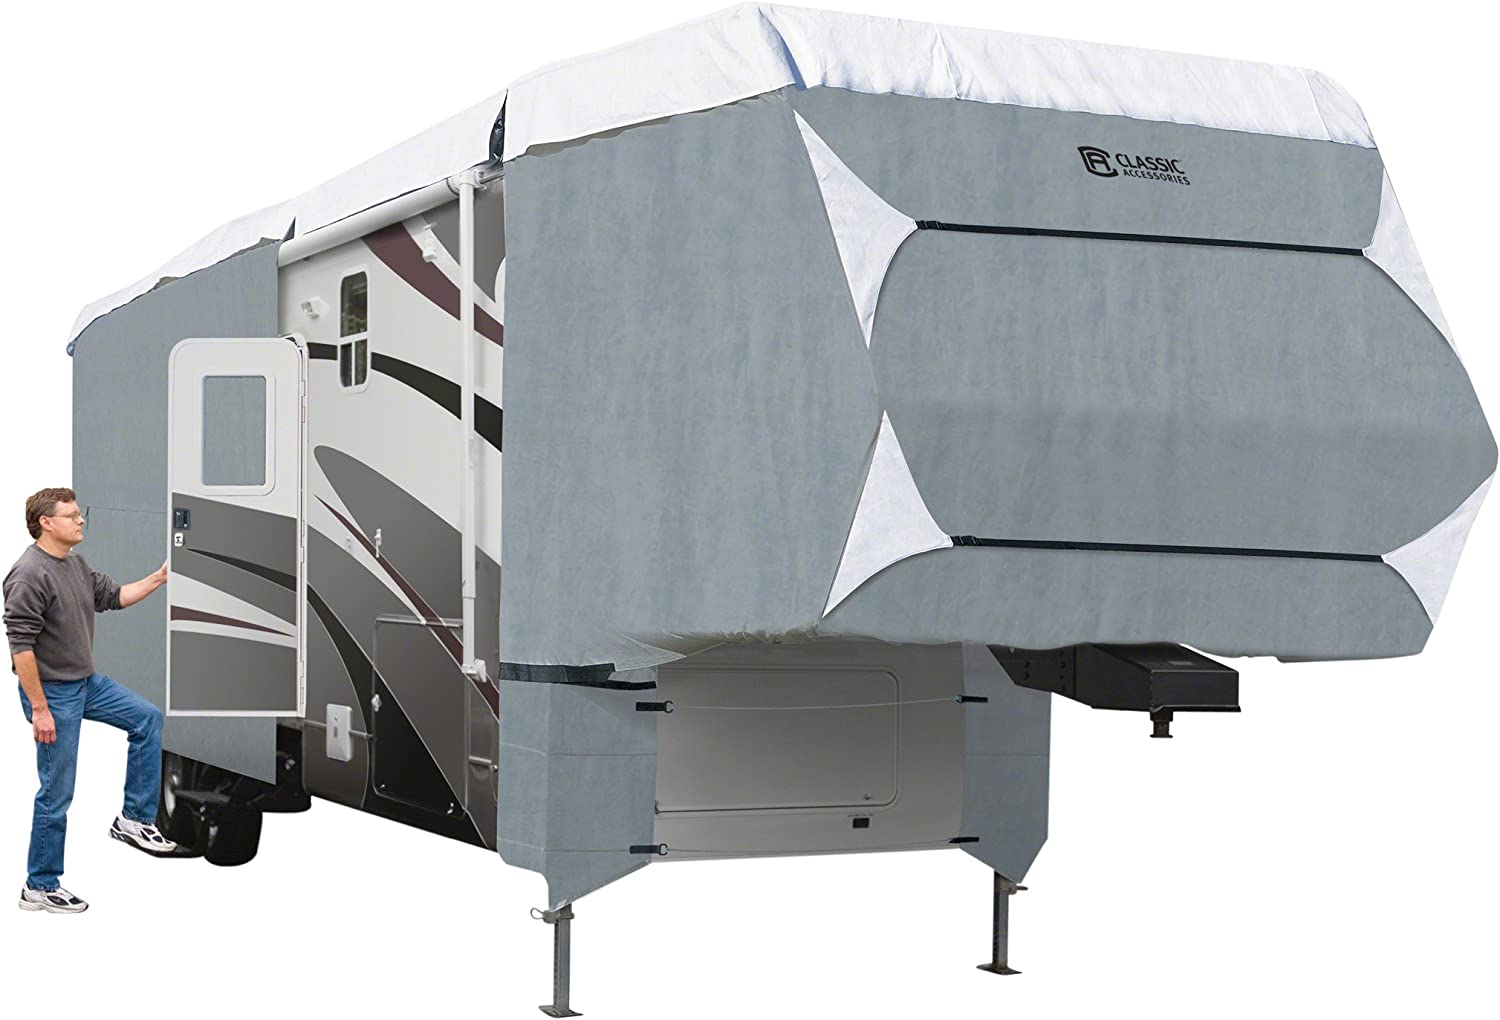 Classic Accessories 20-083-11113-101 OverDrive PolyPro 3 Deluxe Cover for 37' to 41' Extra Tall 5th Wheel Trailers,Grey